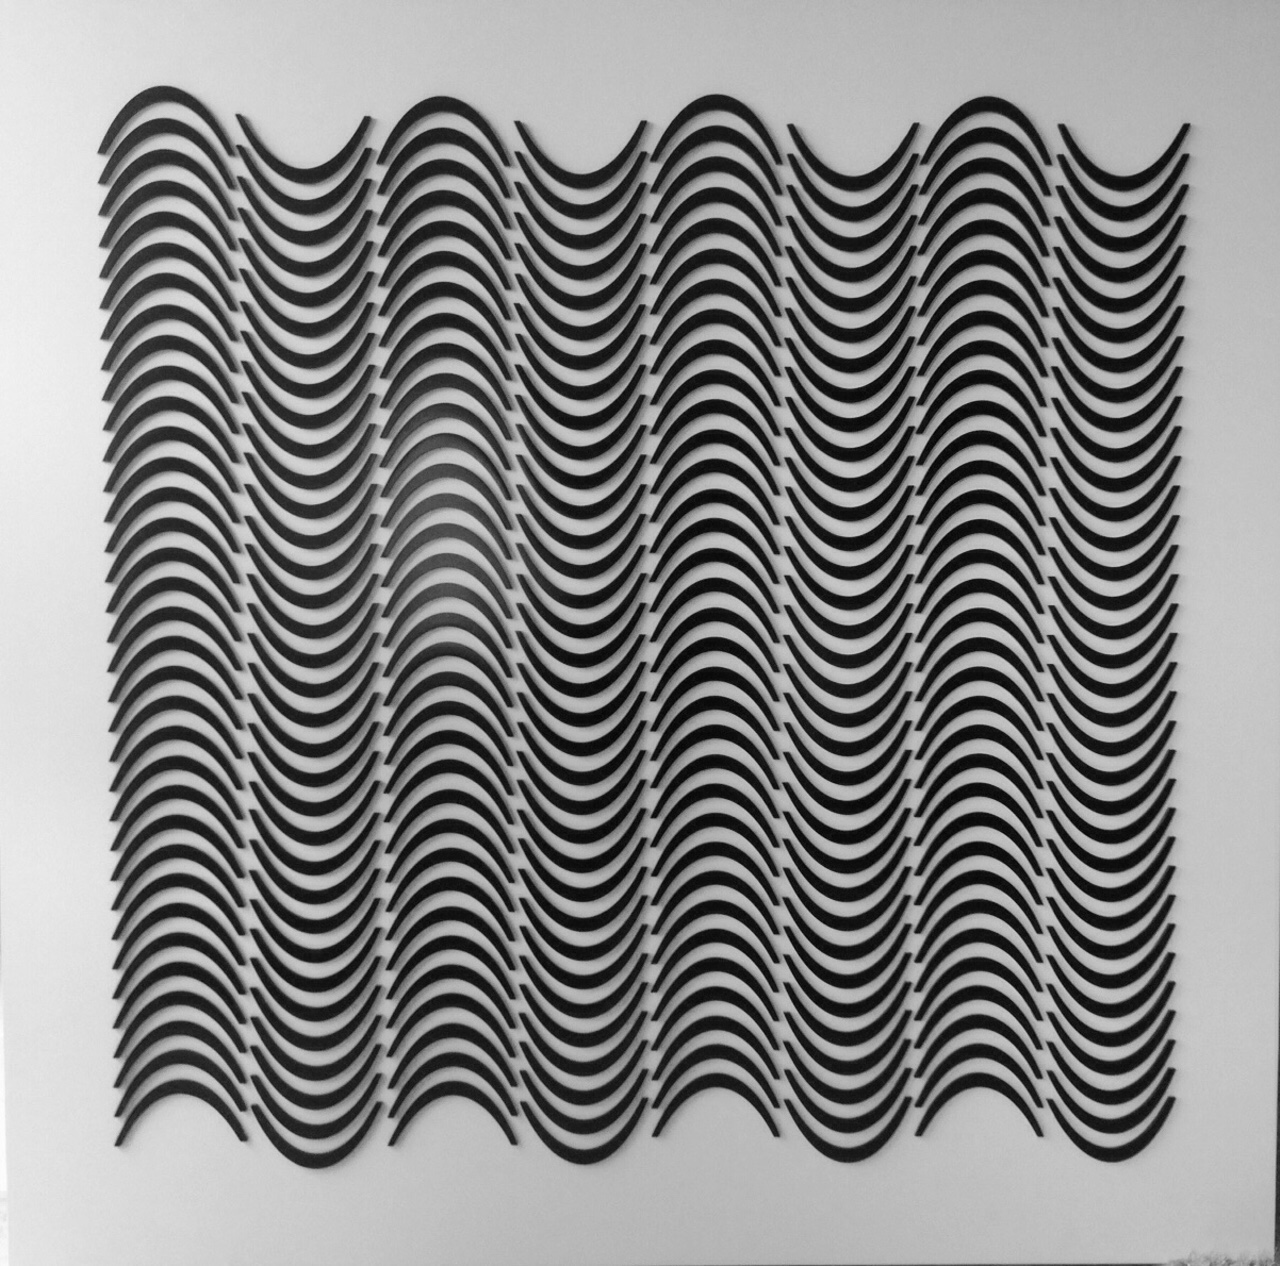 Distortion Waves